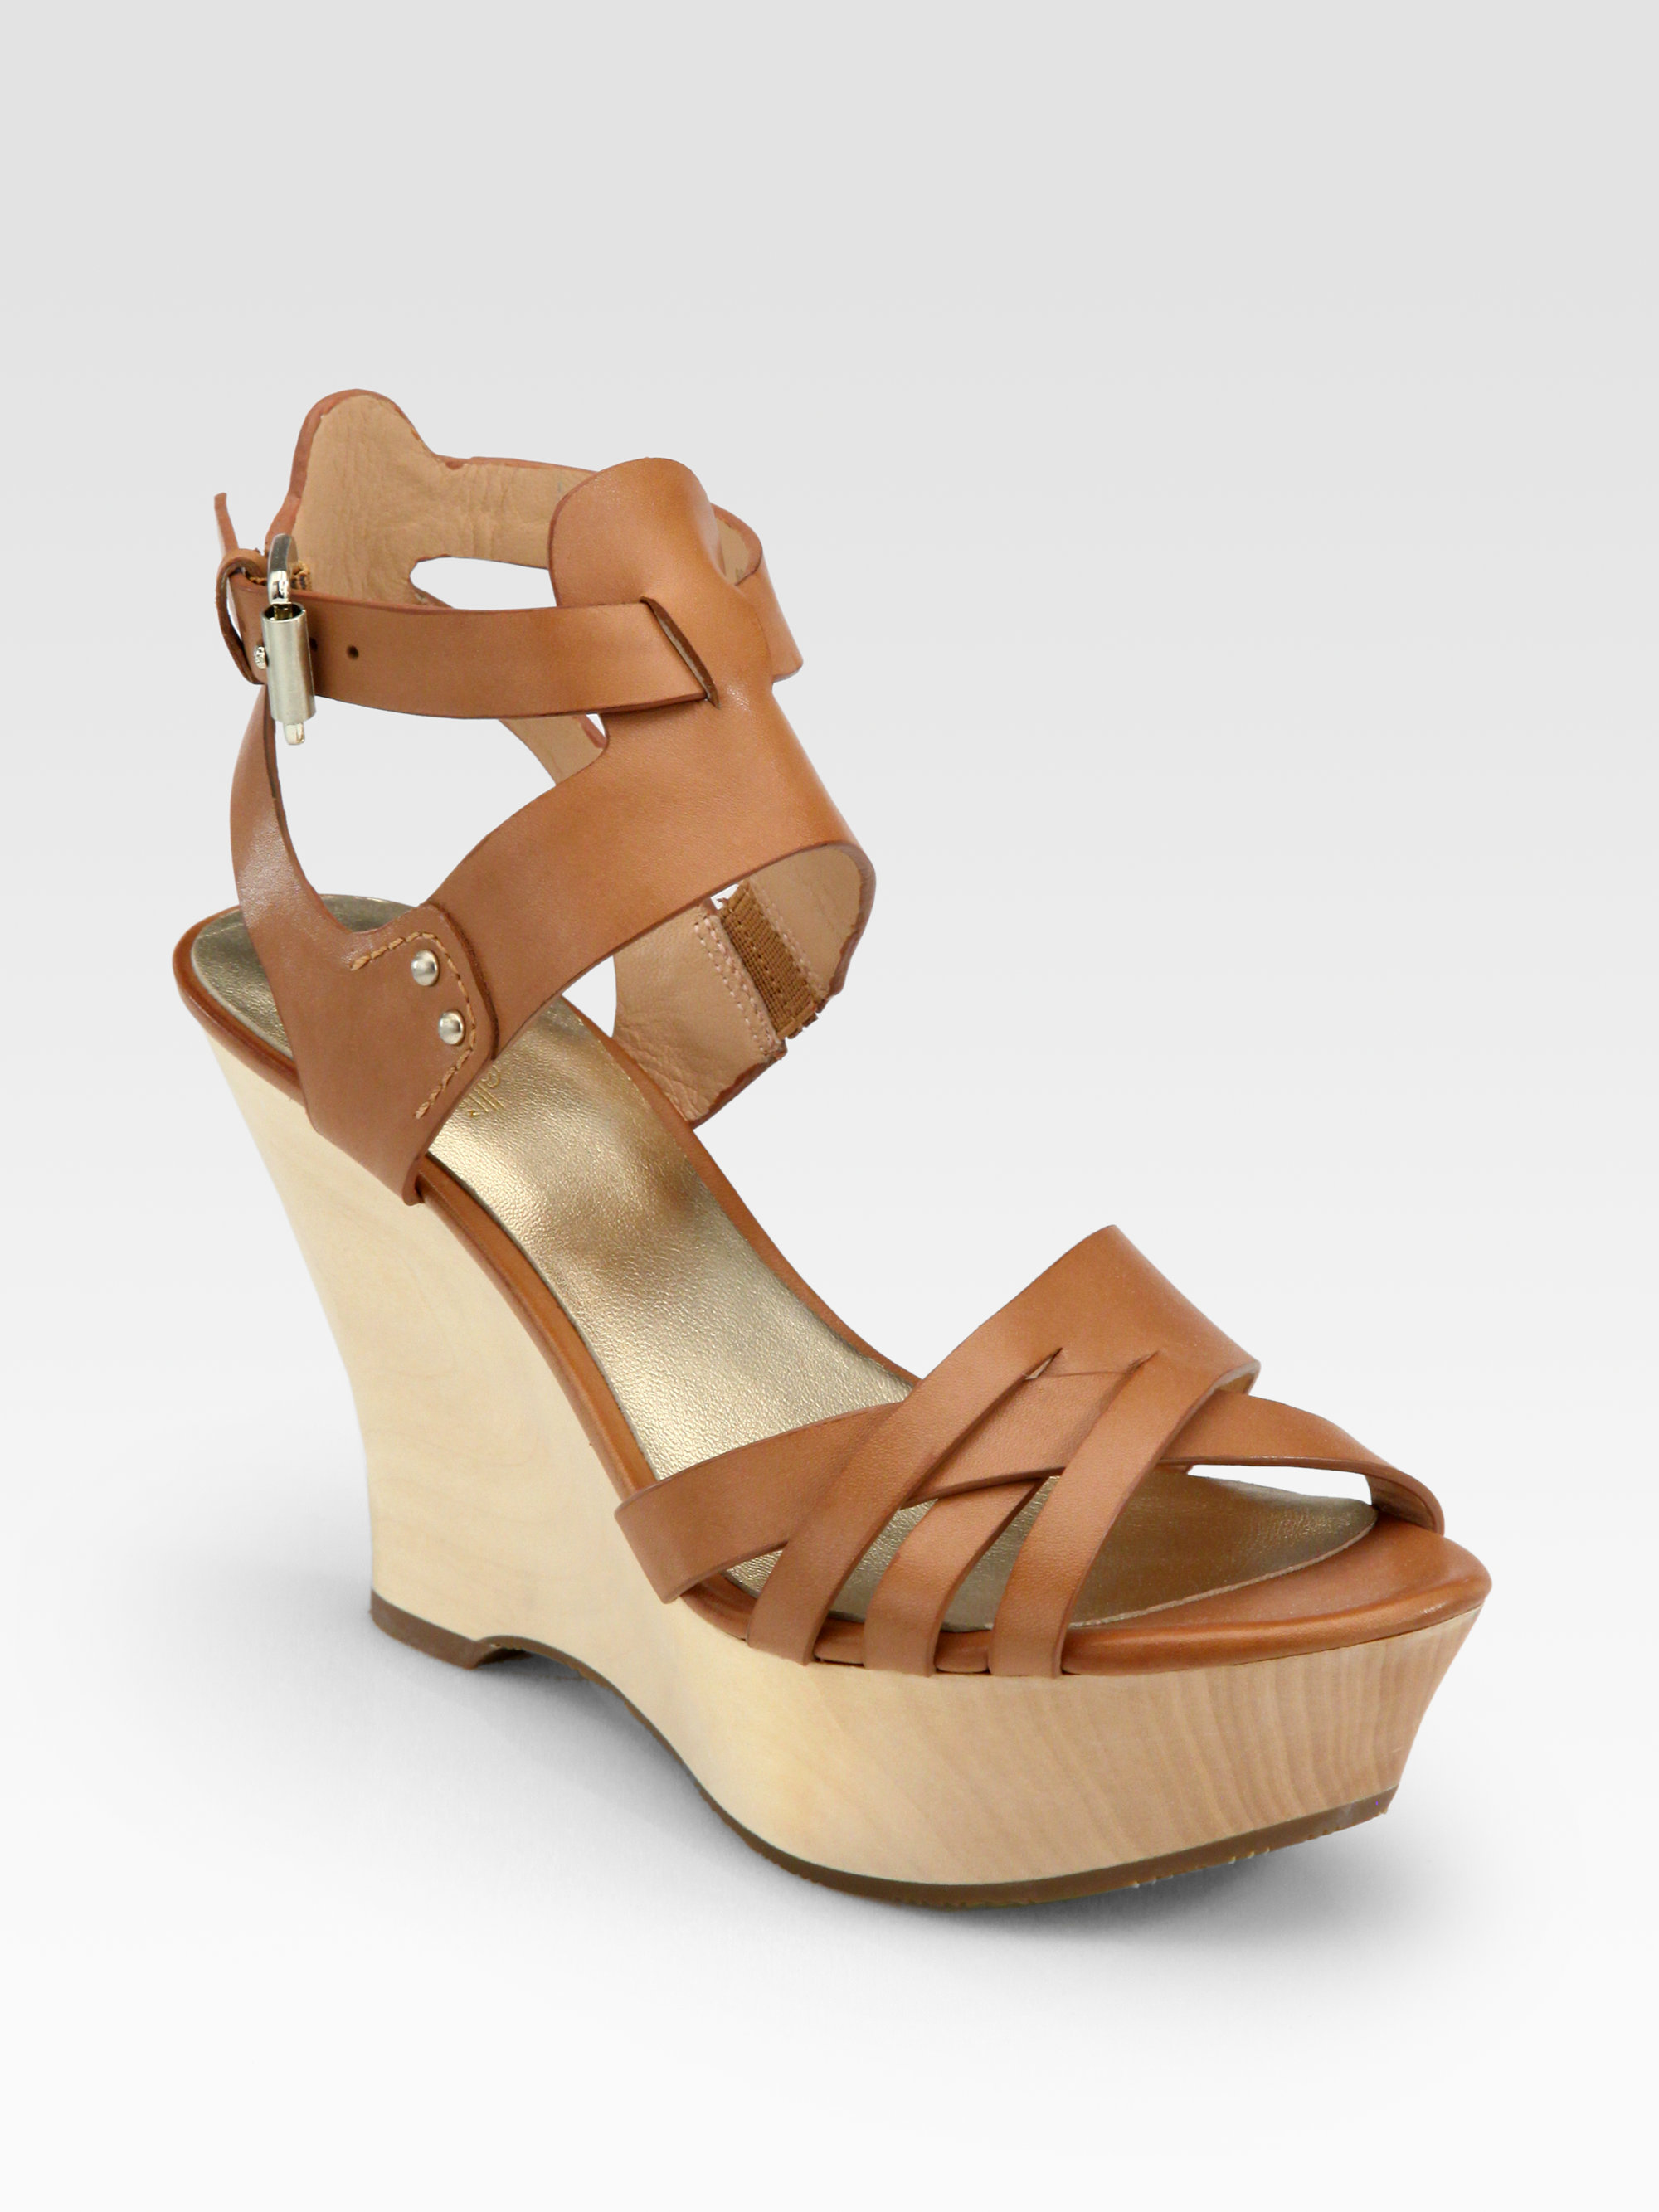 cheap online store outlet amazon Belle by Sigerson Morrison Embossed Wedge Sandals wide range of PuMyvY